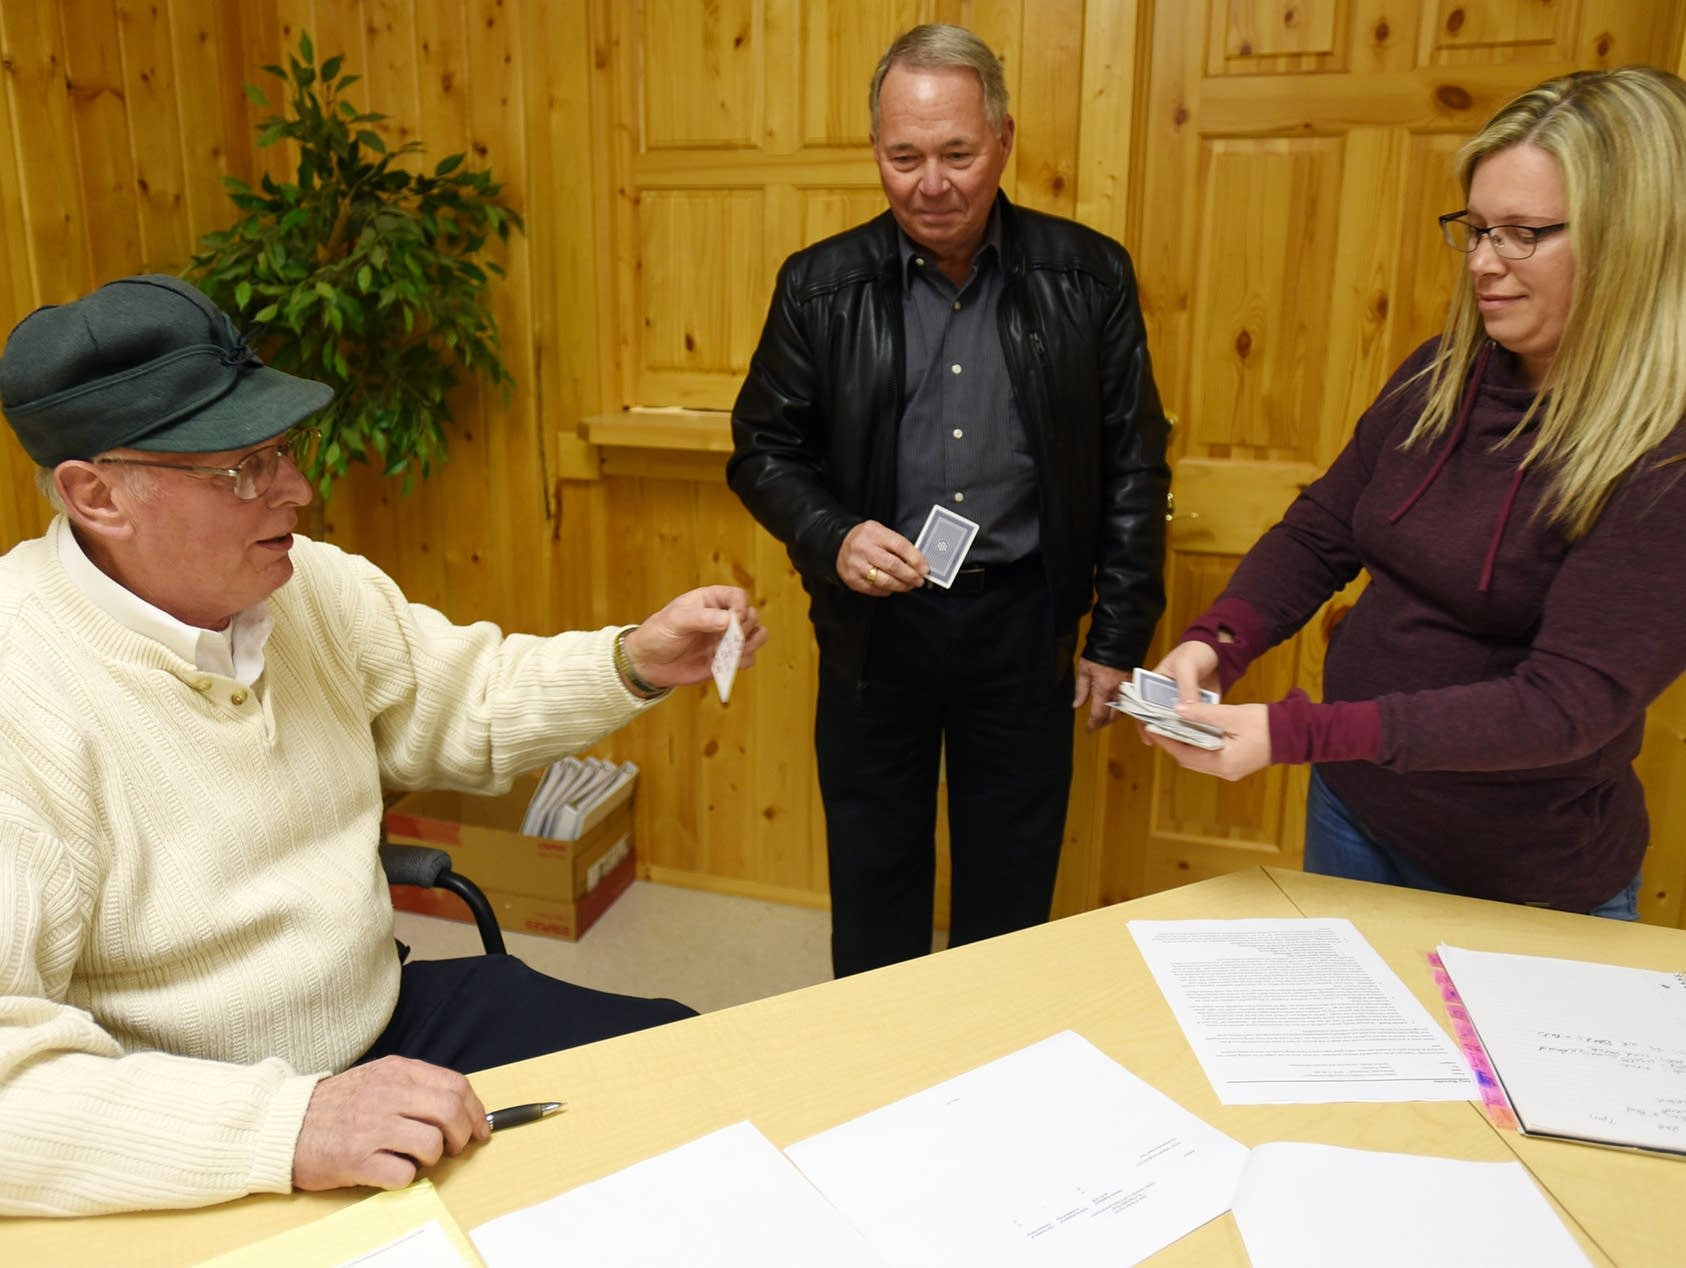 Kevin Larson held his card as mayor Paul Allen considered his draw.